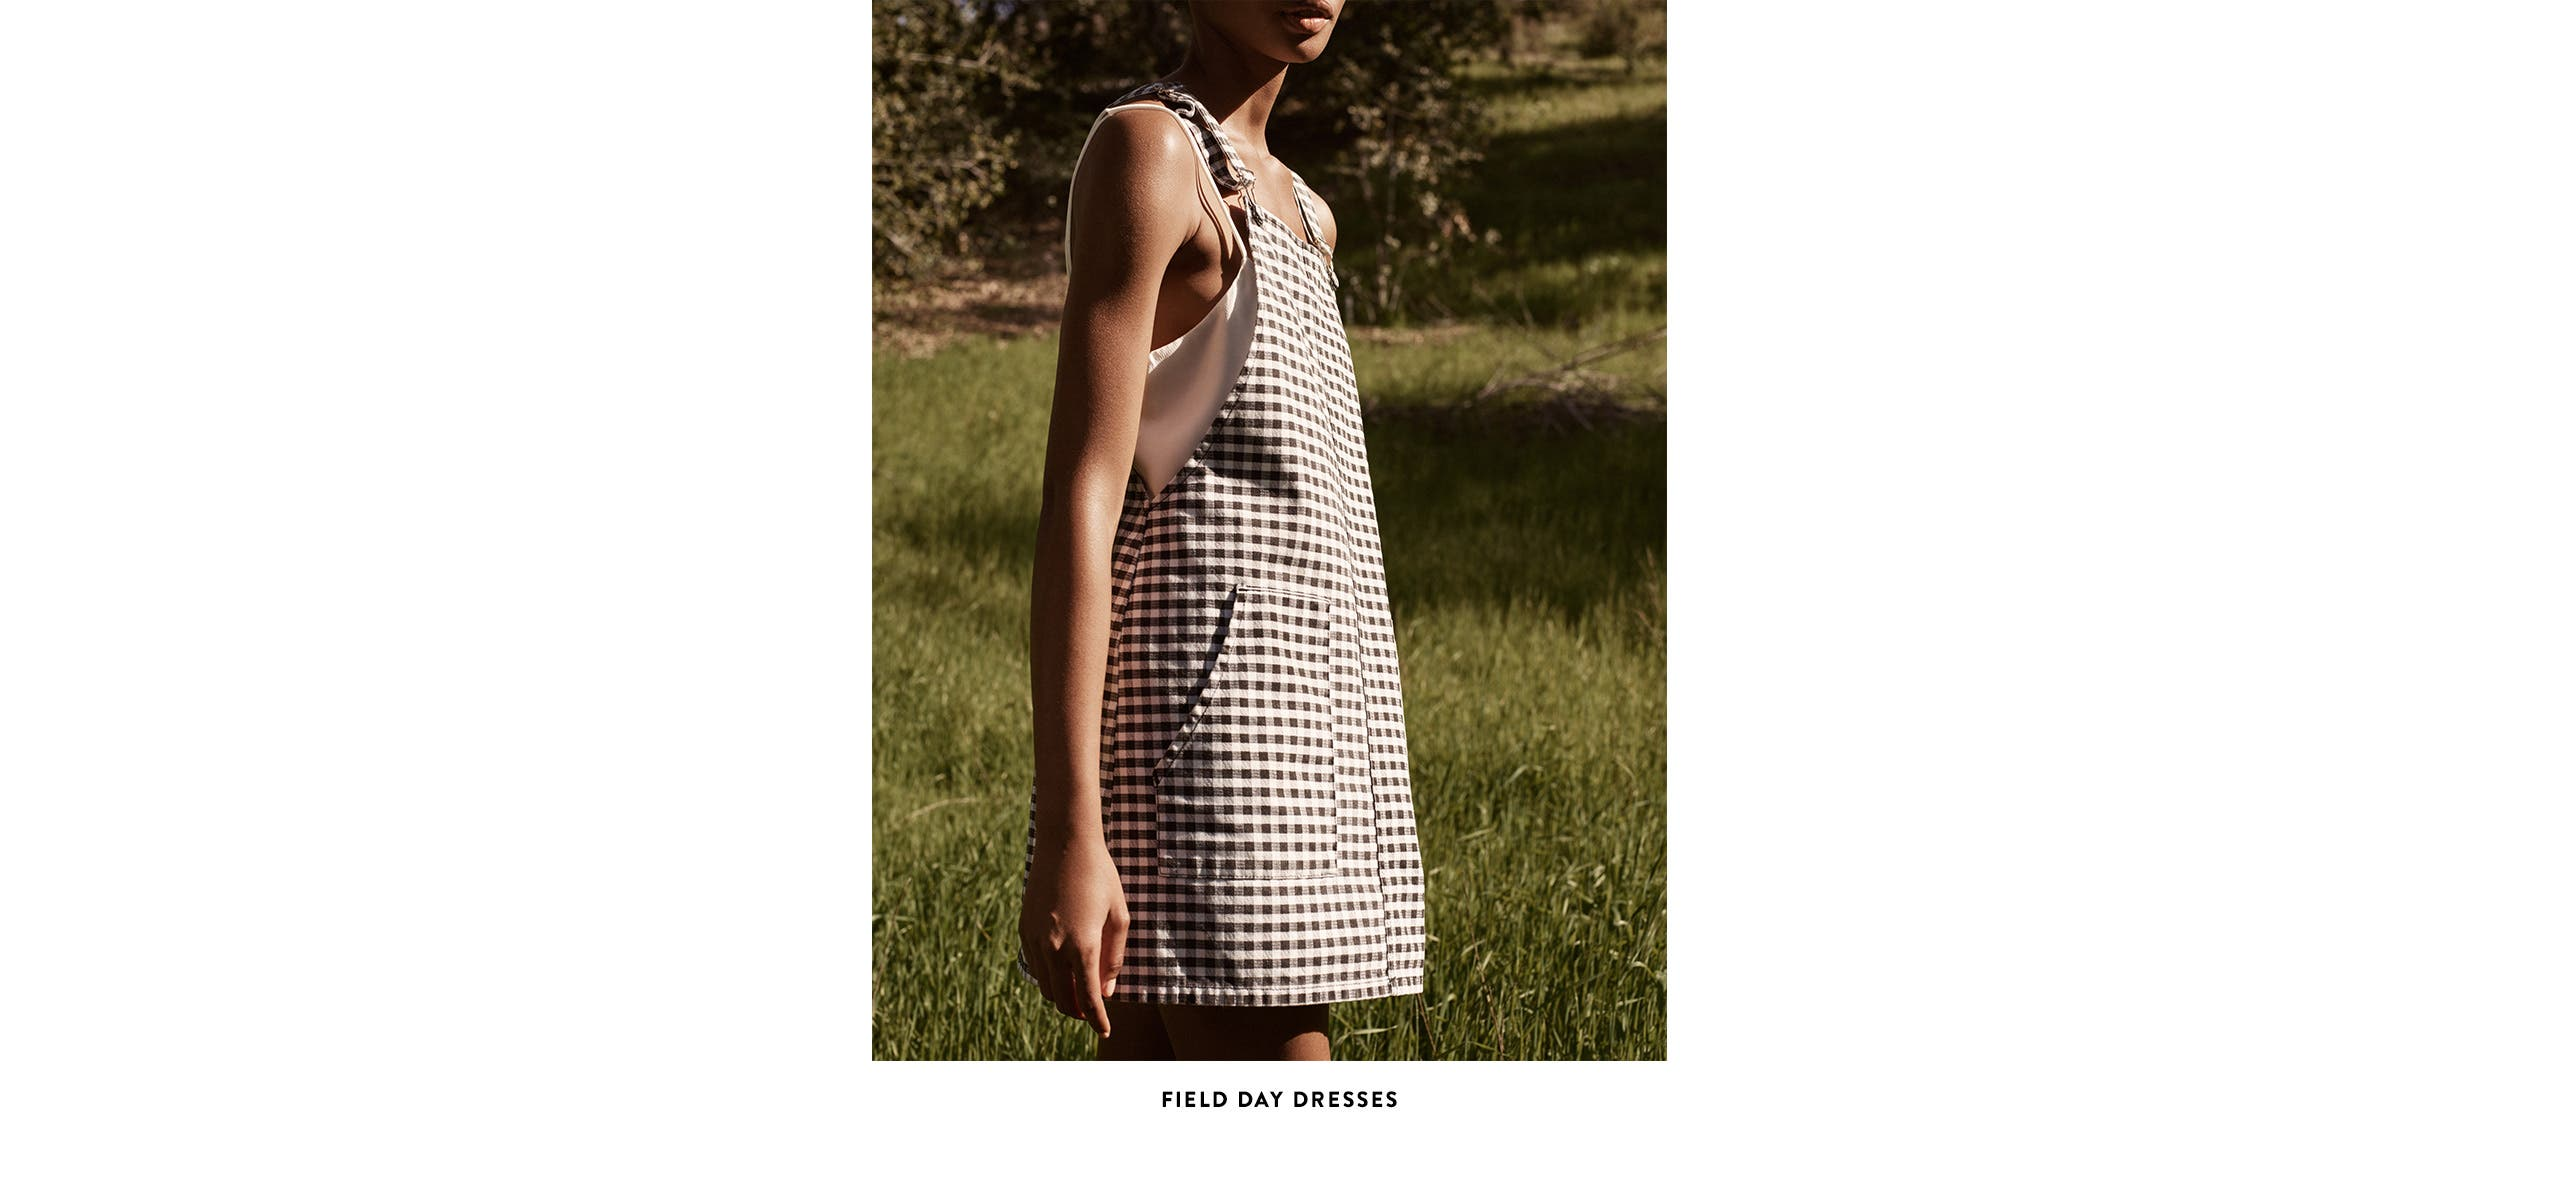 Field day dresses from Topshop.